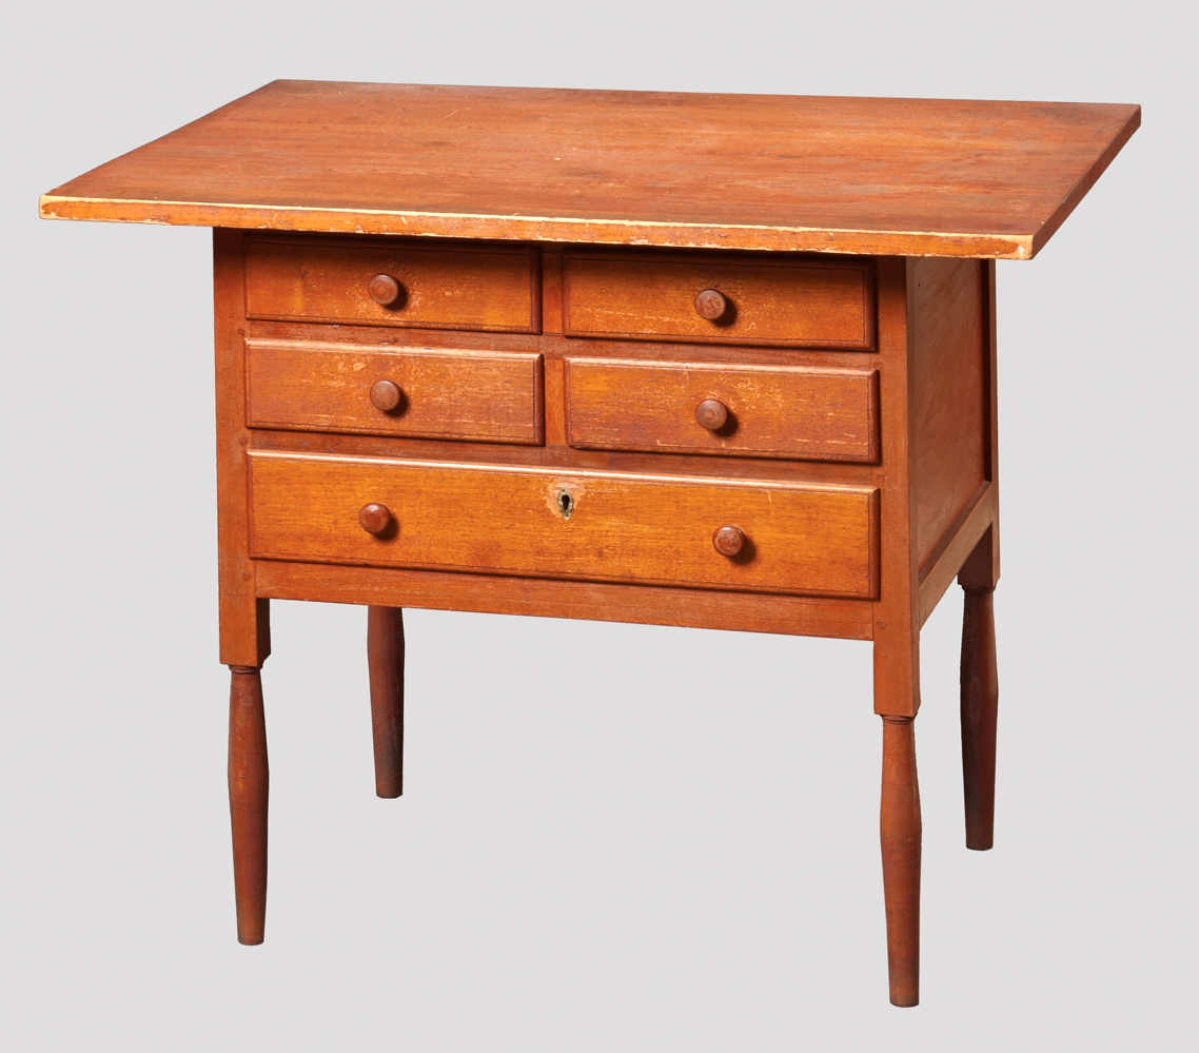 The top lot of the auction and a highlight of the McCue collection was this sewing table with five drawers that sold to longtime collectors, the Murrays of Michigan, for $234,000. The piece has a unique locking device allowing one to lock all the drawers at once with a single key. The Hancock, Mass., piece was made circa 1840.